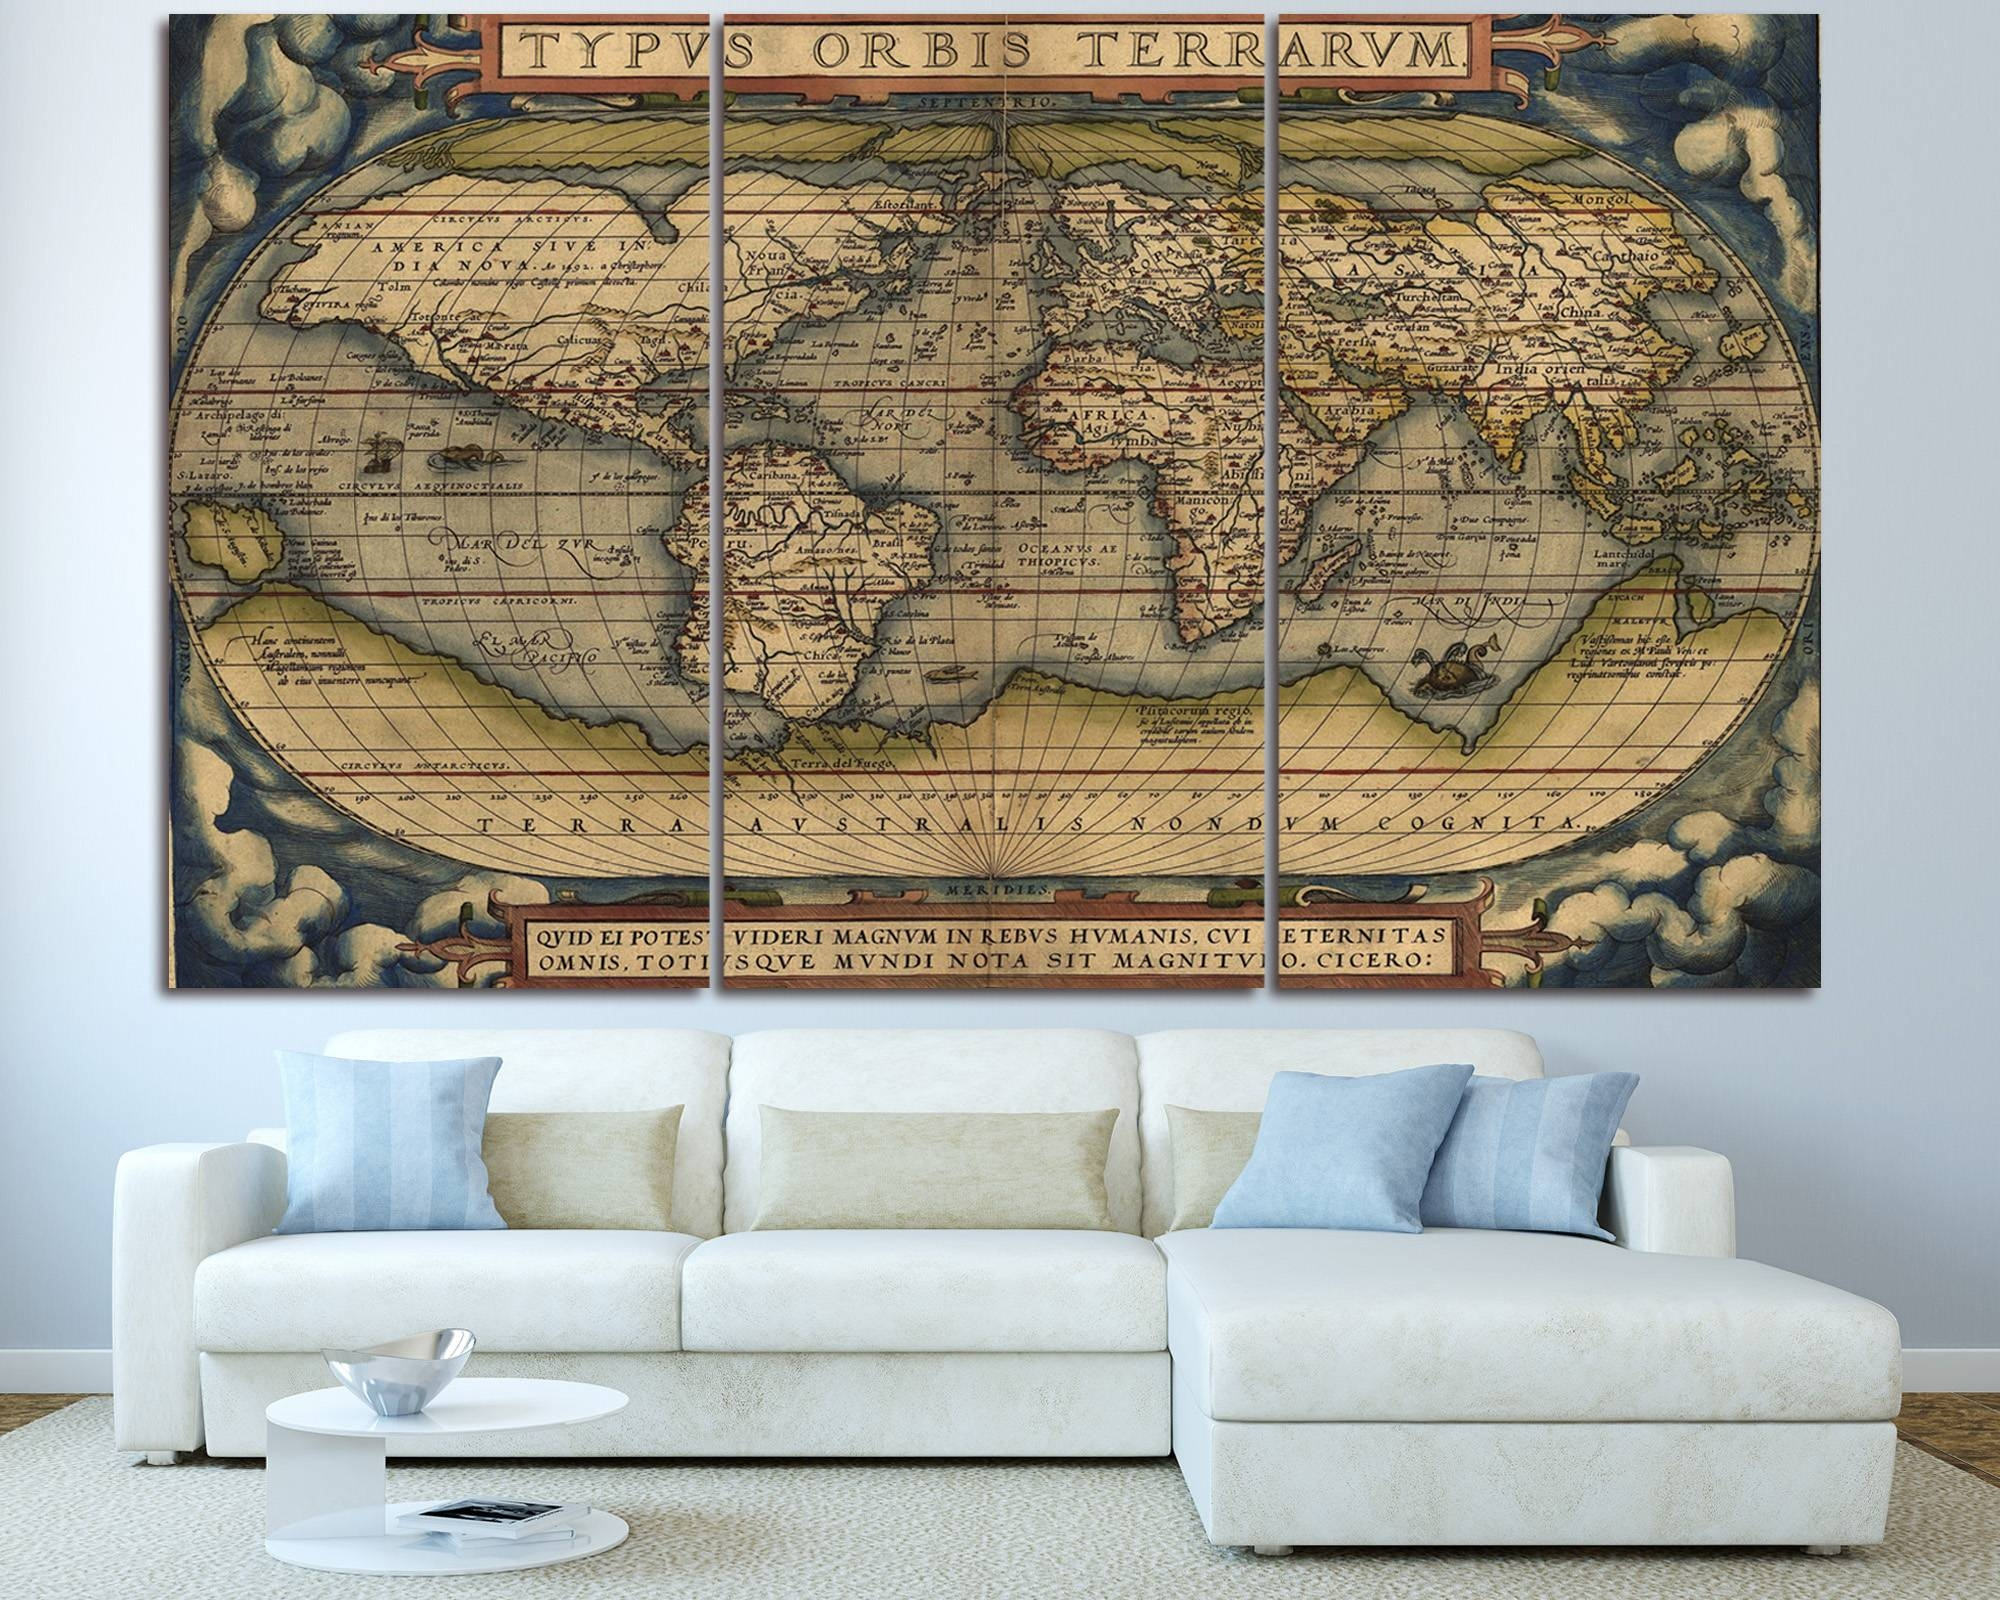 Texelprintart Studio – Canvas Wall Art Print For Home Decoration Intended For Latest Large Map Wall Art (View 9 of 20)